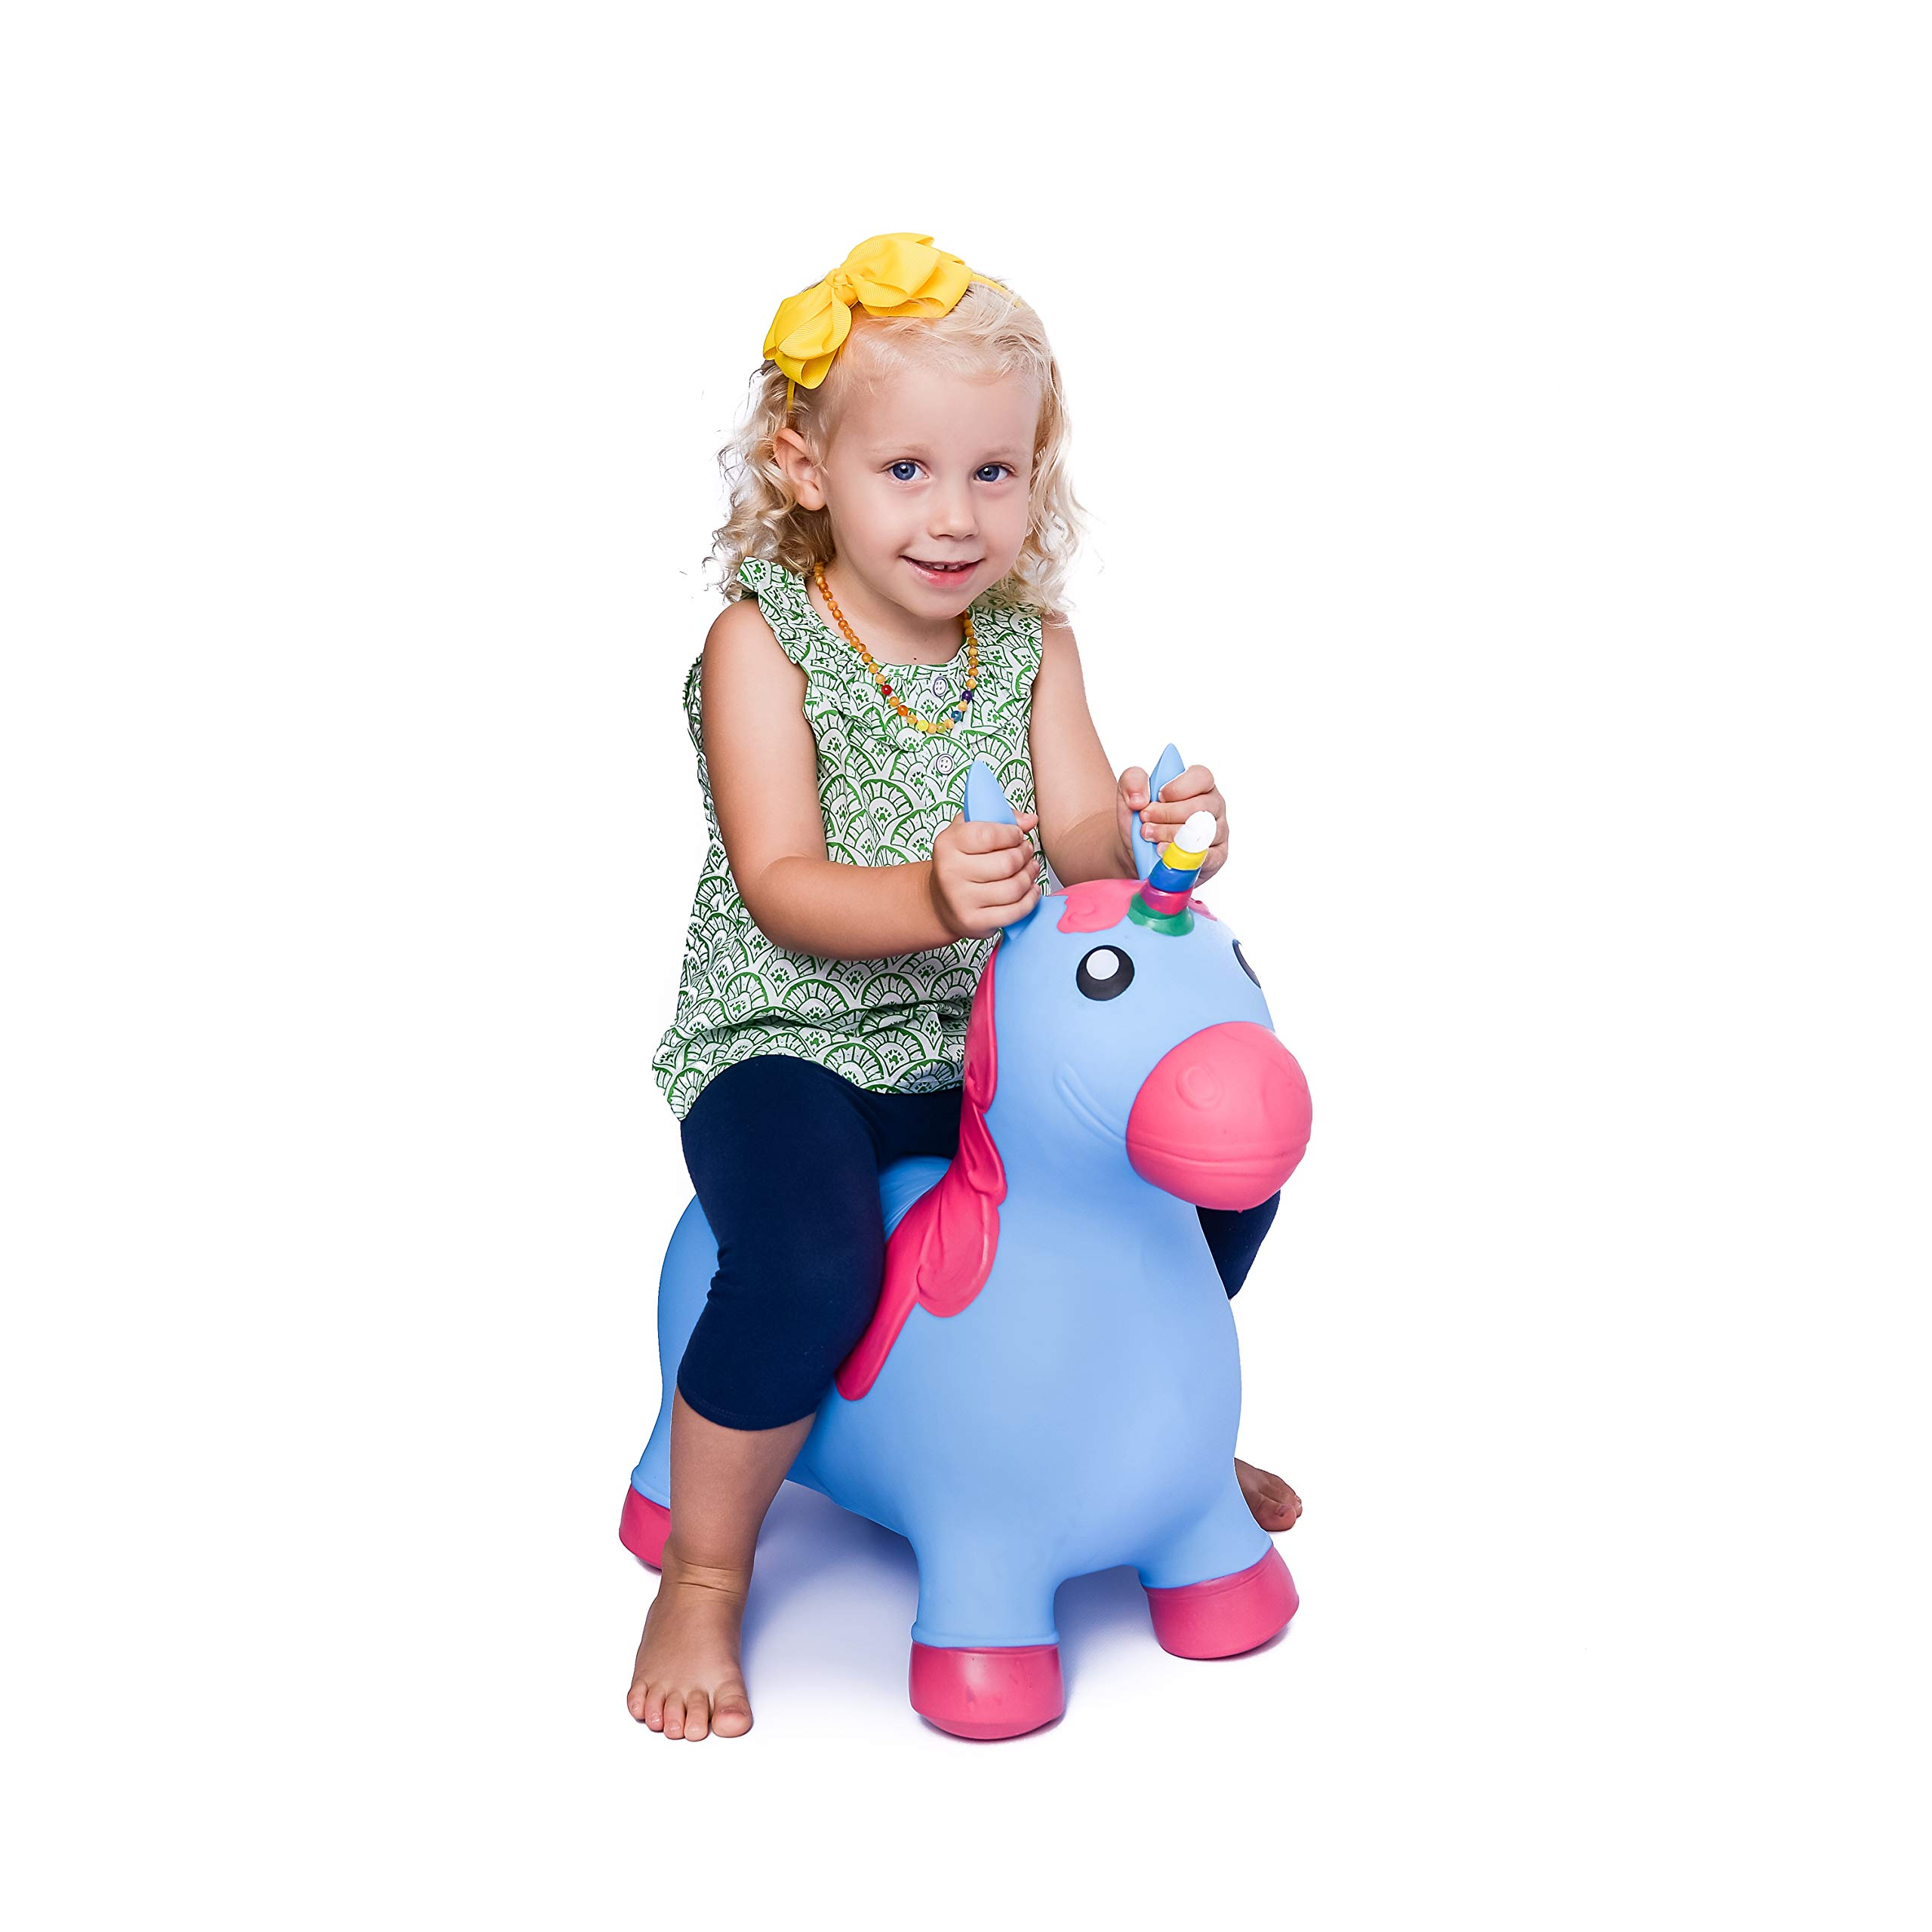 Kiddie Play Hopper Ball Unicorn Inflatable Hoppity Hop Bouncy Horse Toy (Pump Included) by Kiddie Play (Image #2)